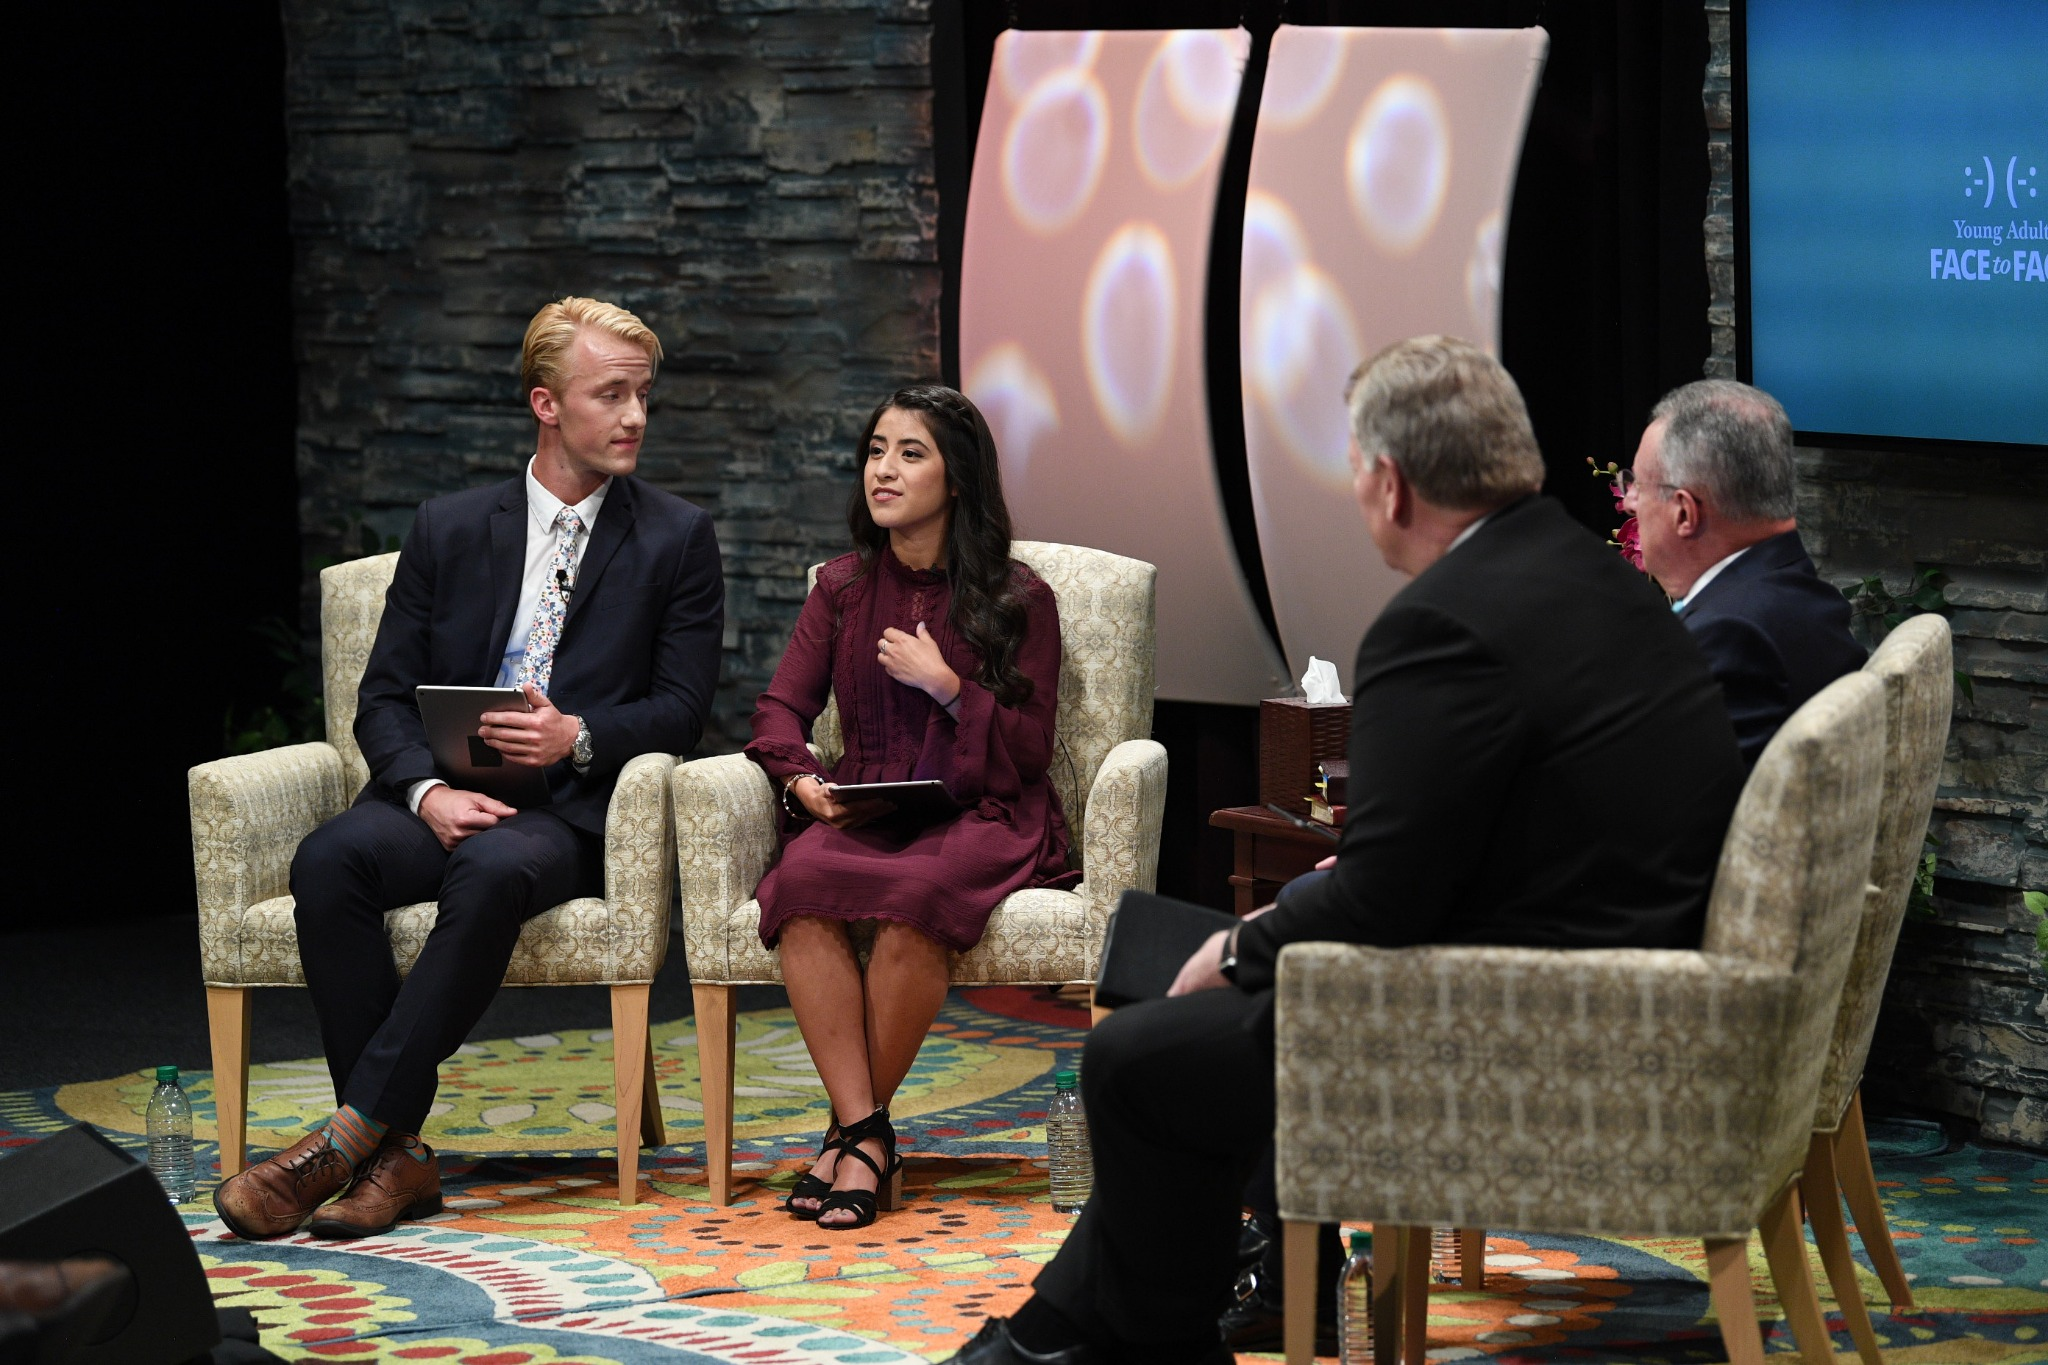 Latter-day Saint young adults, Max Alley and Liliana Tapia, serve as moderators of the Worldwide Devotional Face to Face broadcast in Provo, Utah, on September 15, 2019.